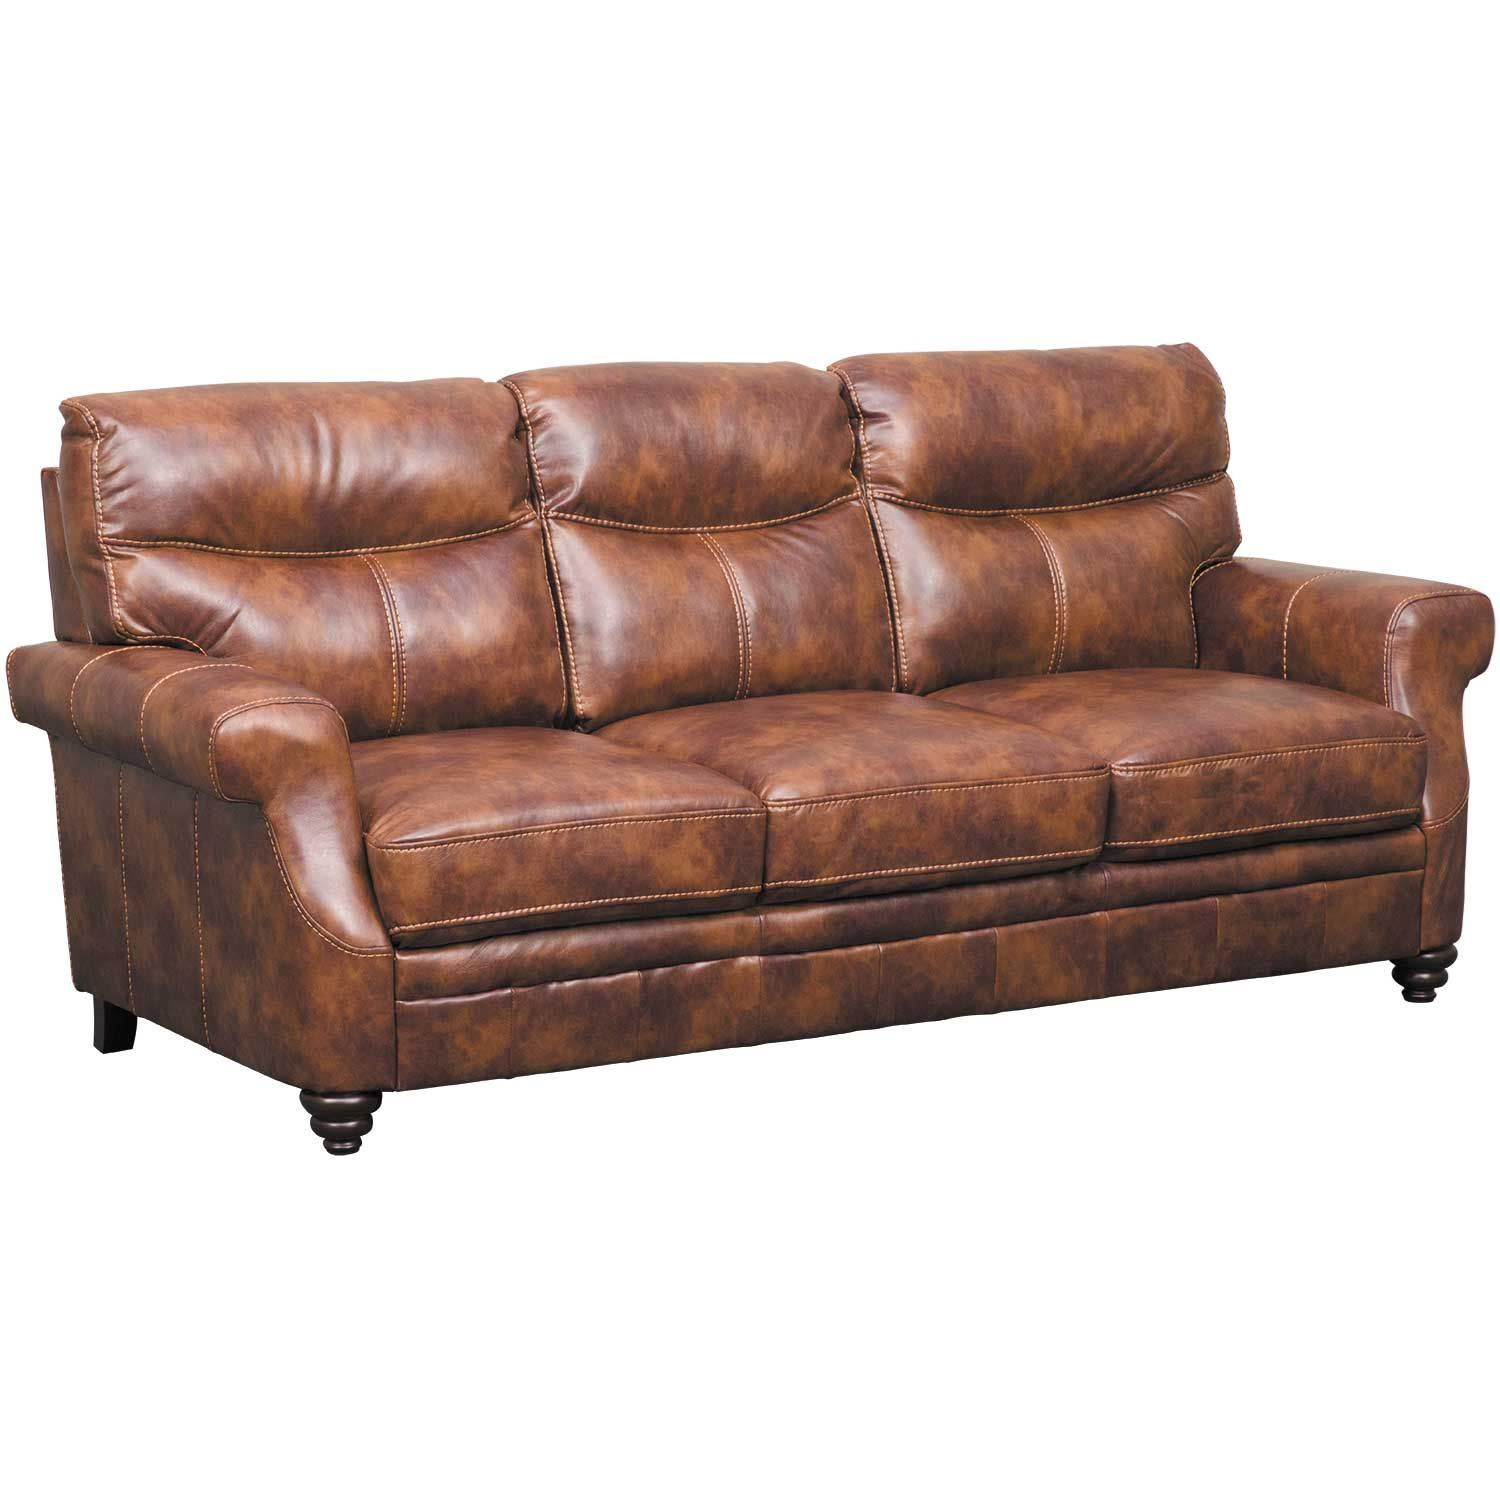 Picture of Owen Sofa